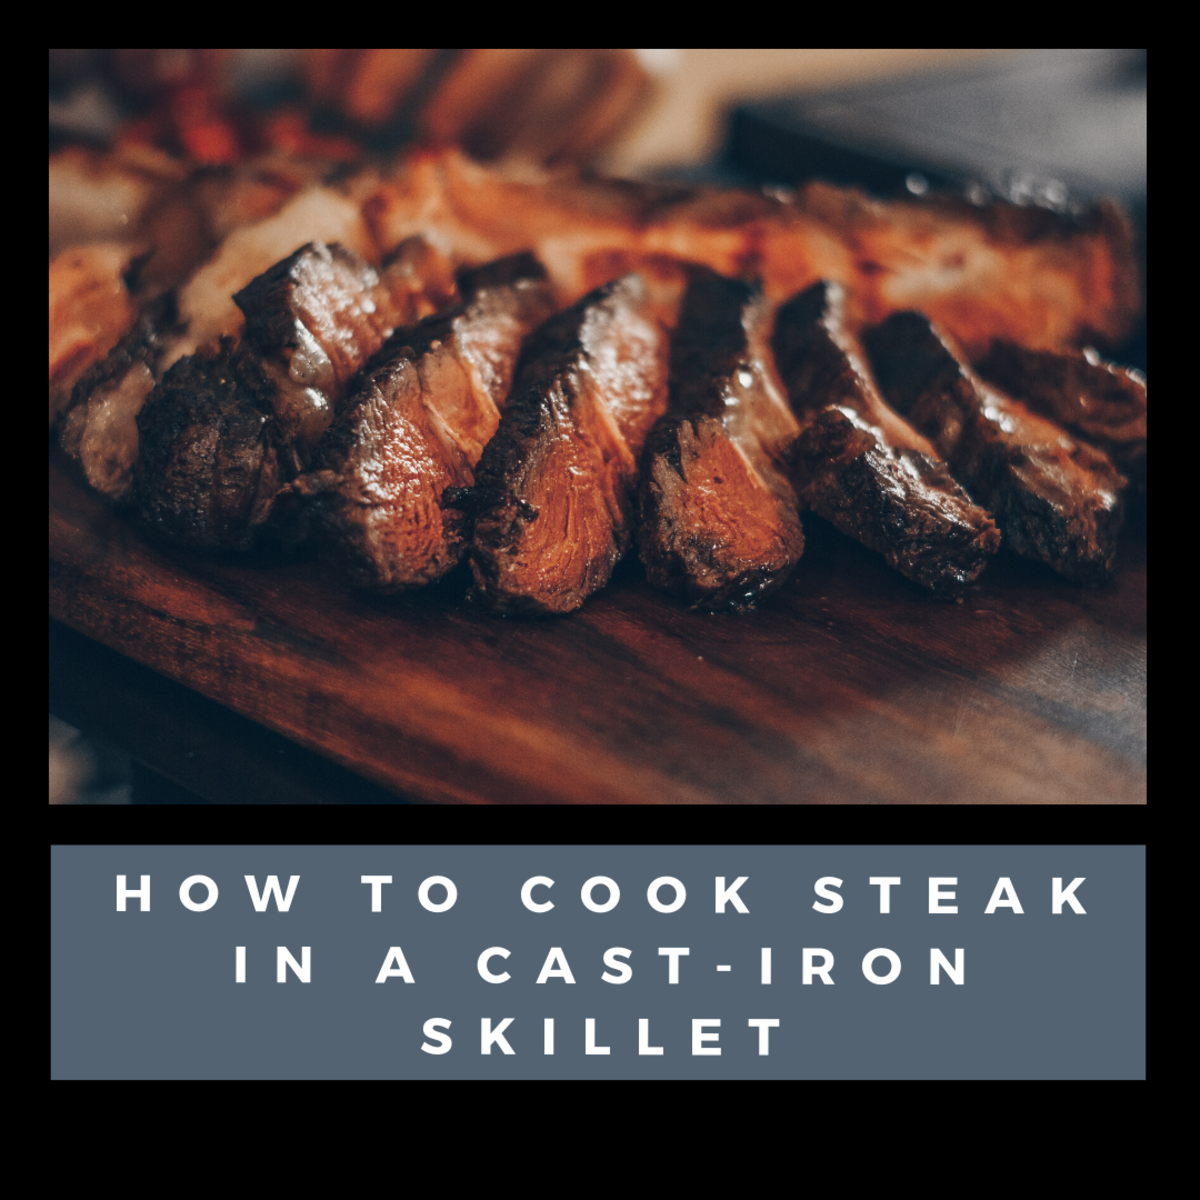 Cast-iron skillets are the best way to cook steak. Try this recipe and see for yourself.